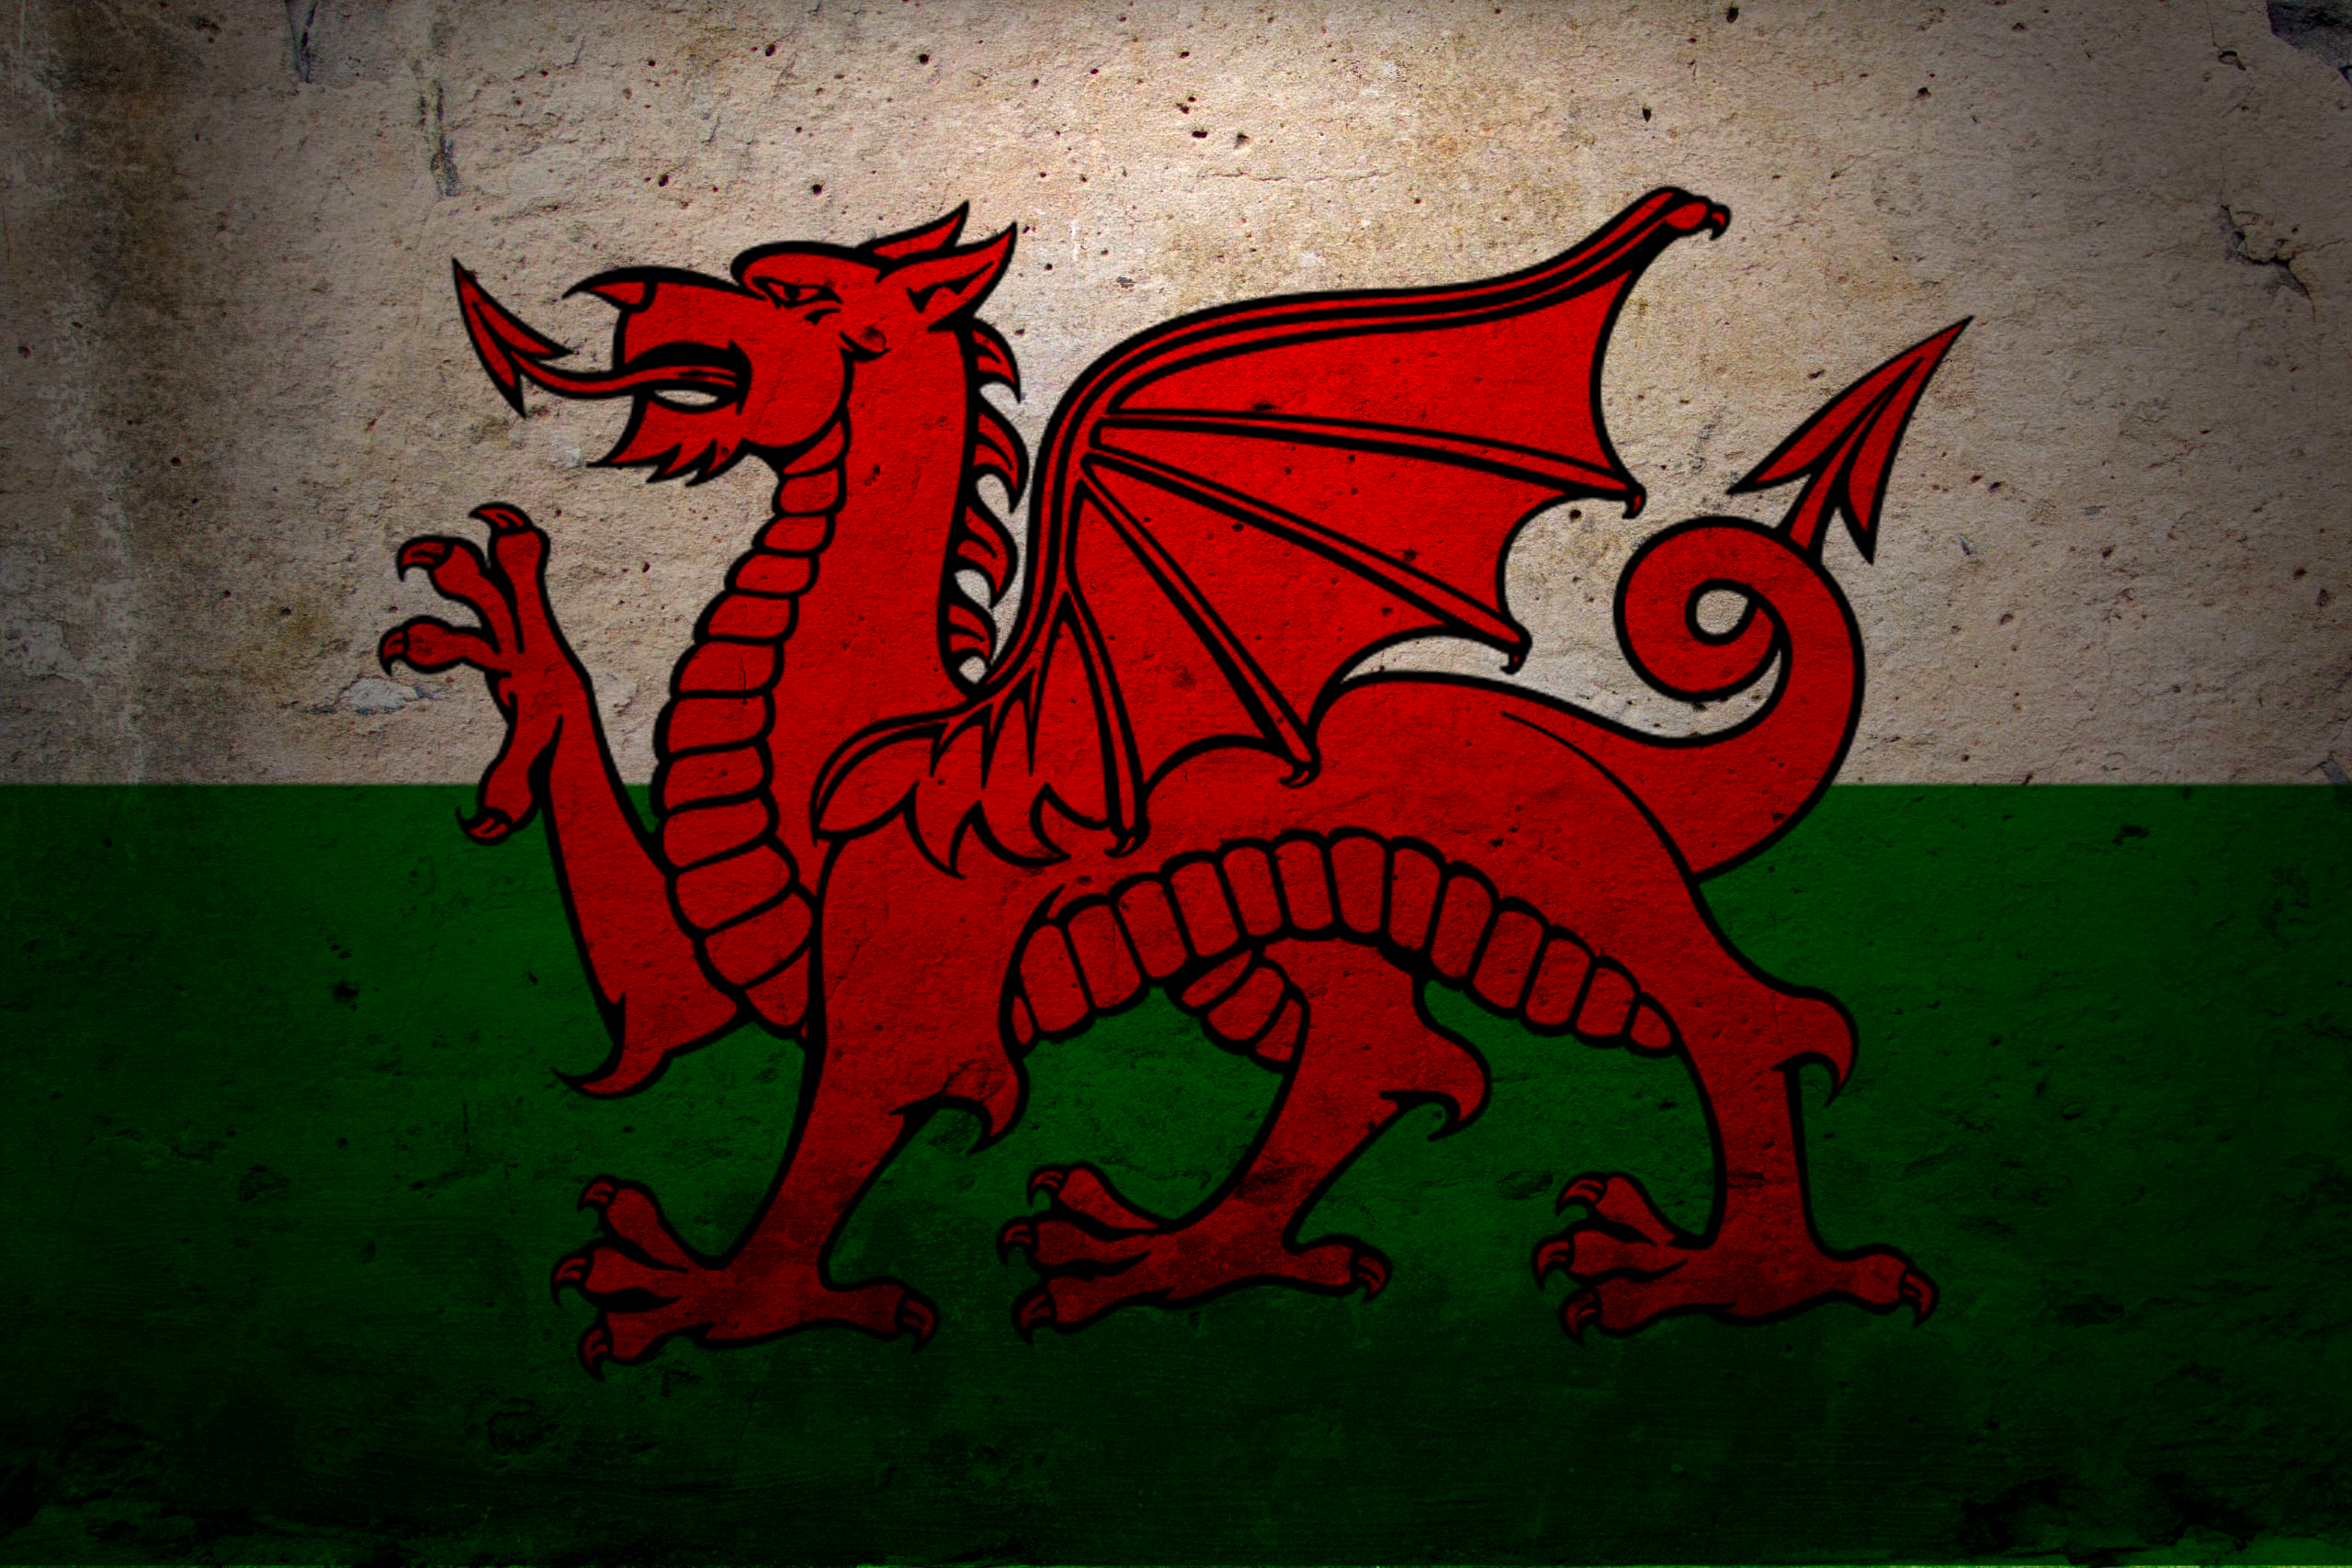 Welsh Flag   welshflagjpg 2560x1707